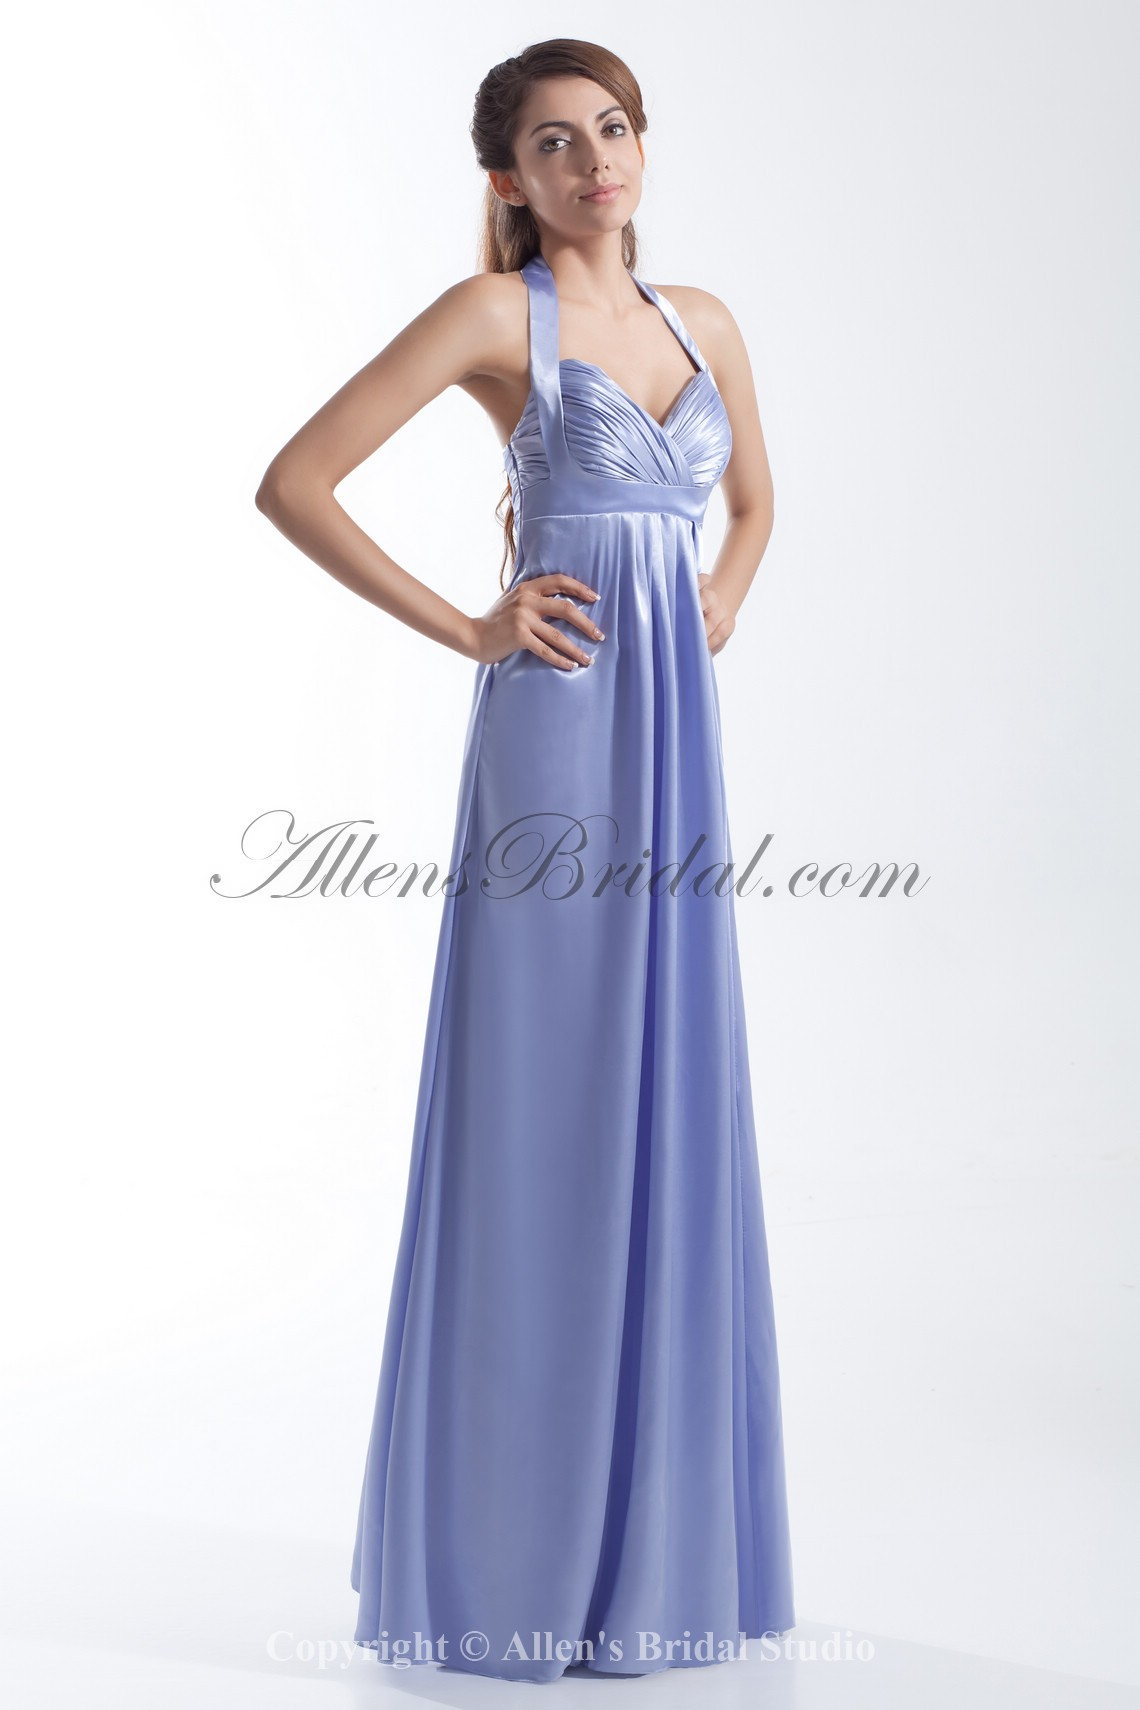 /662-5303/satin-halter-neckline-floor-length-column-prom-dress.jpg